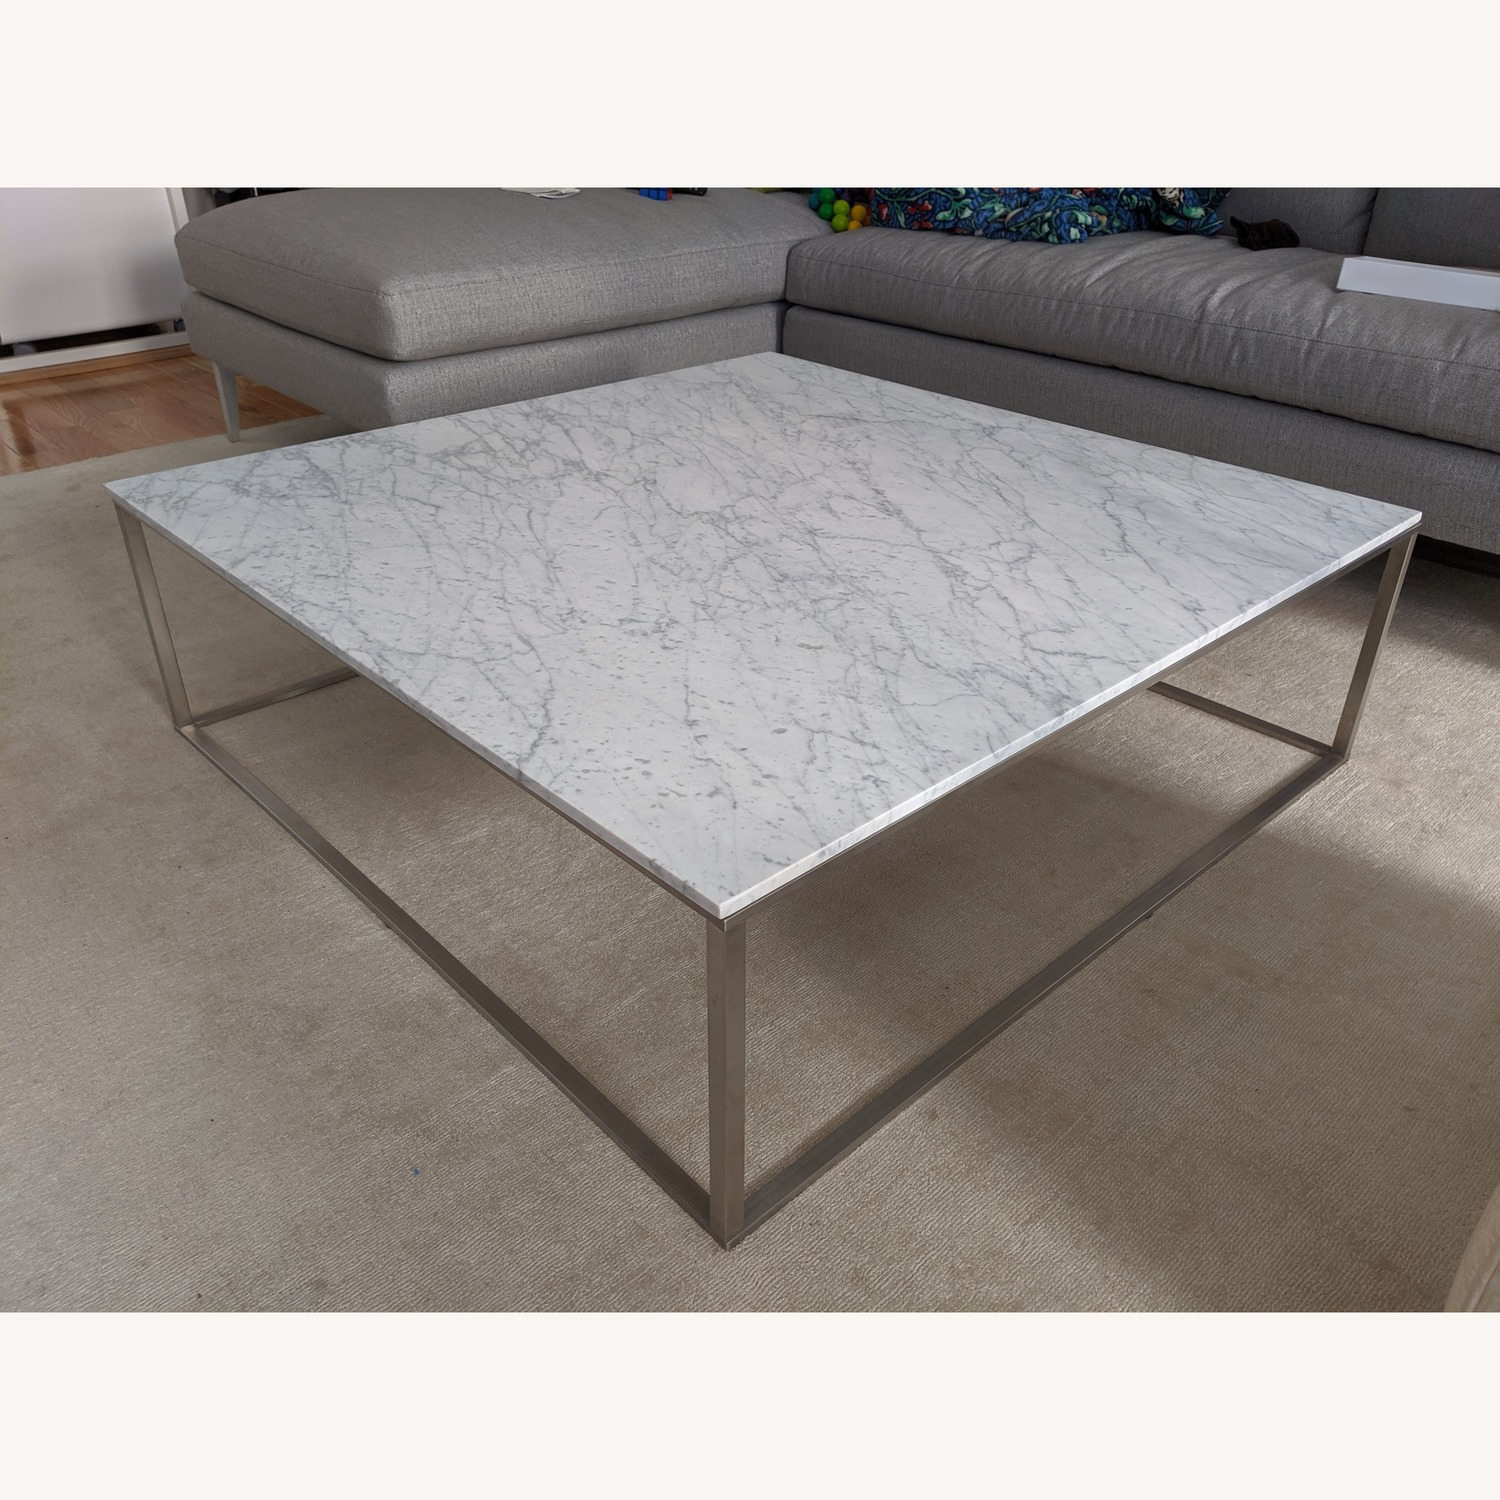 Blu Dot Minimalista Marble Top Coffee Table - image-1